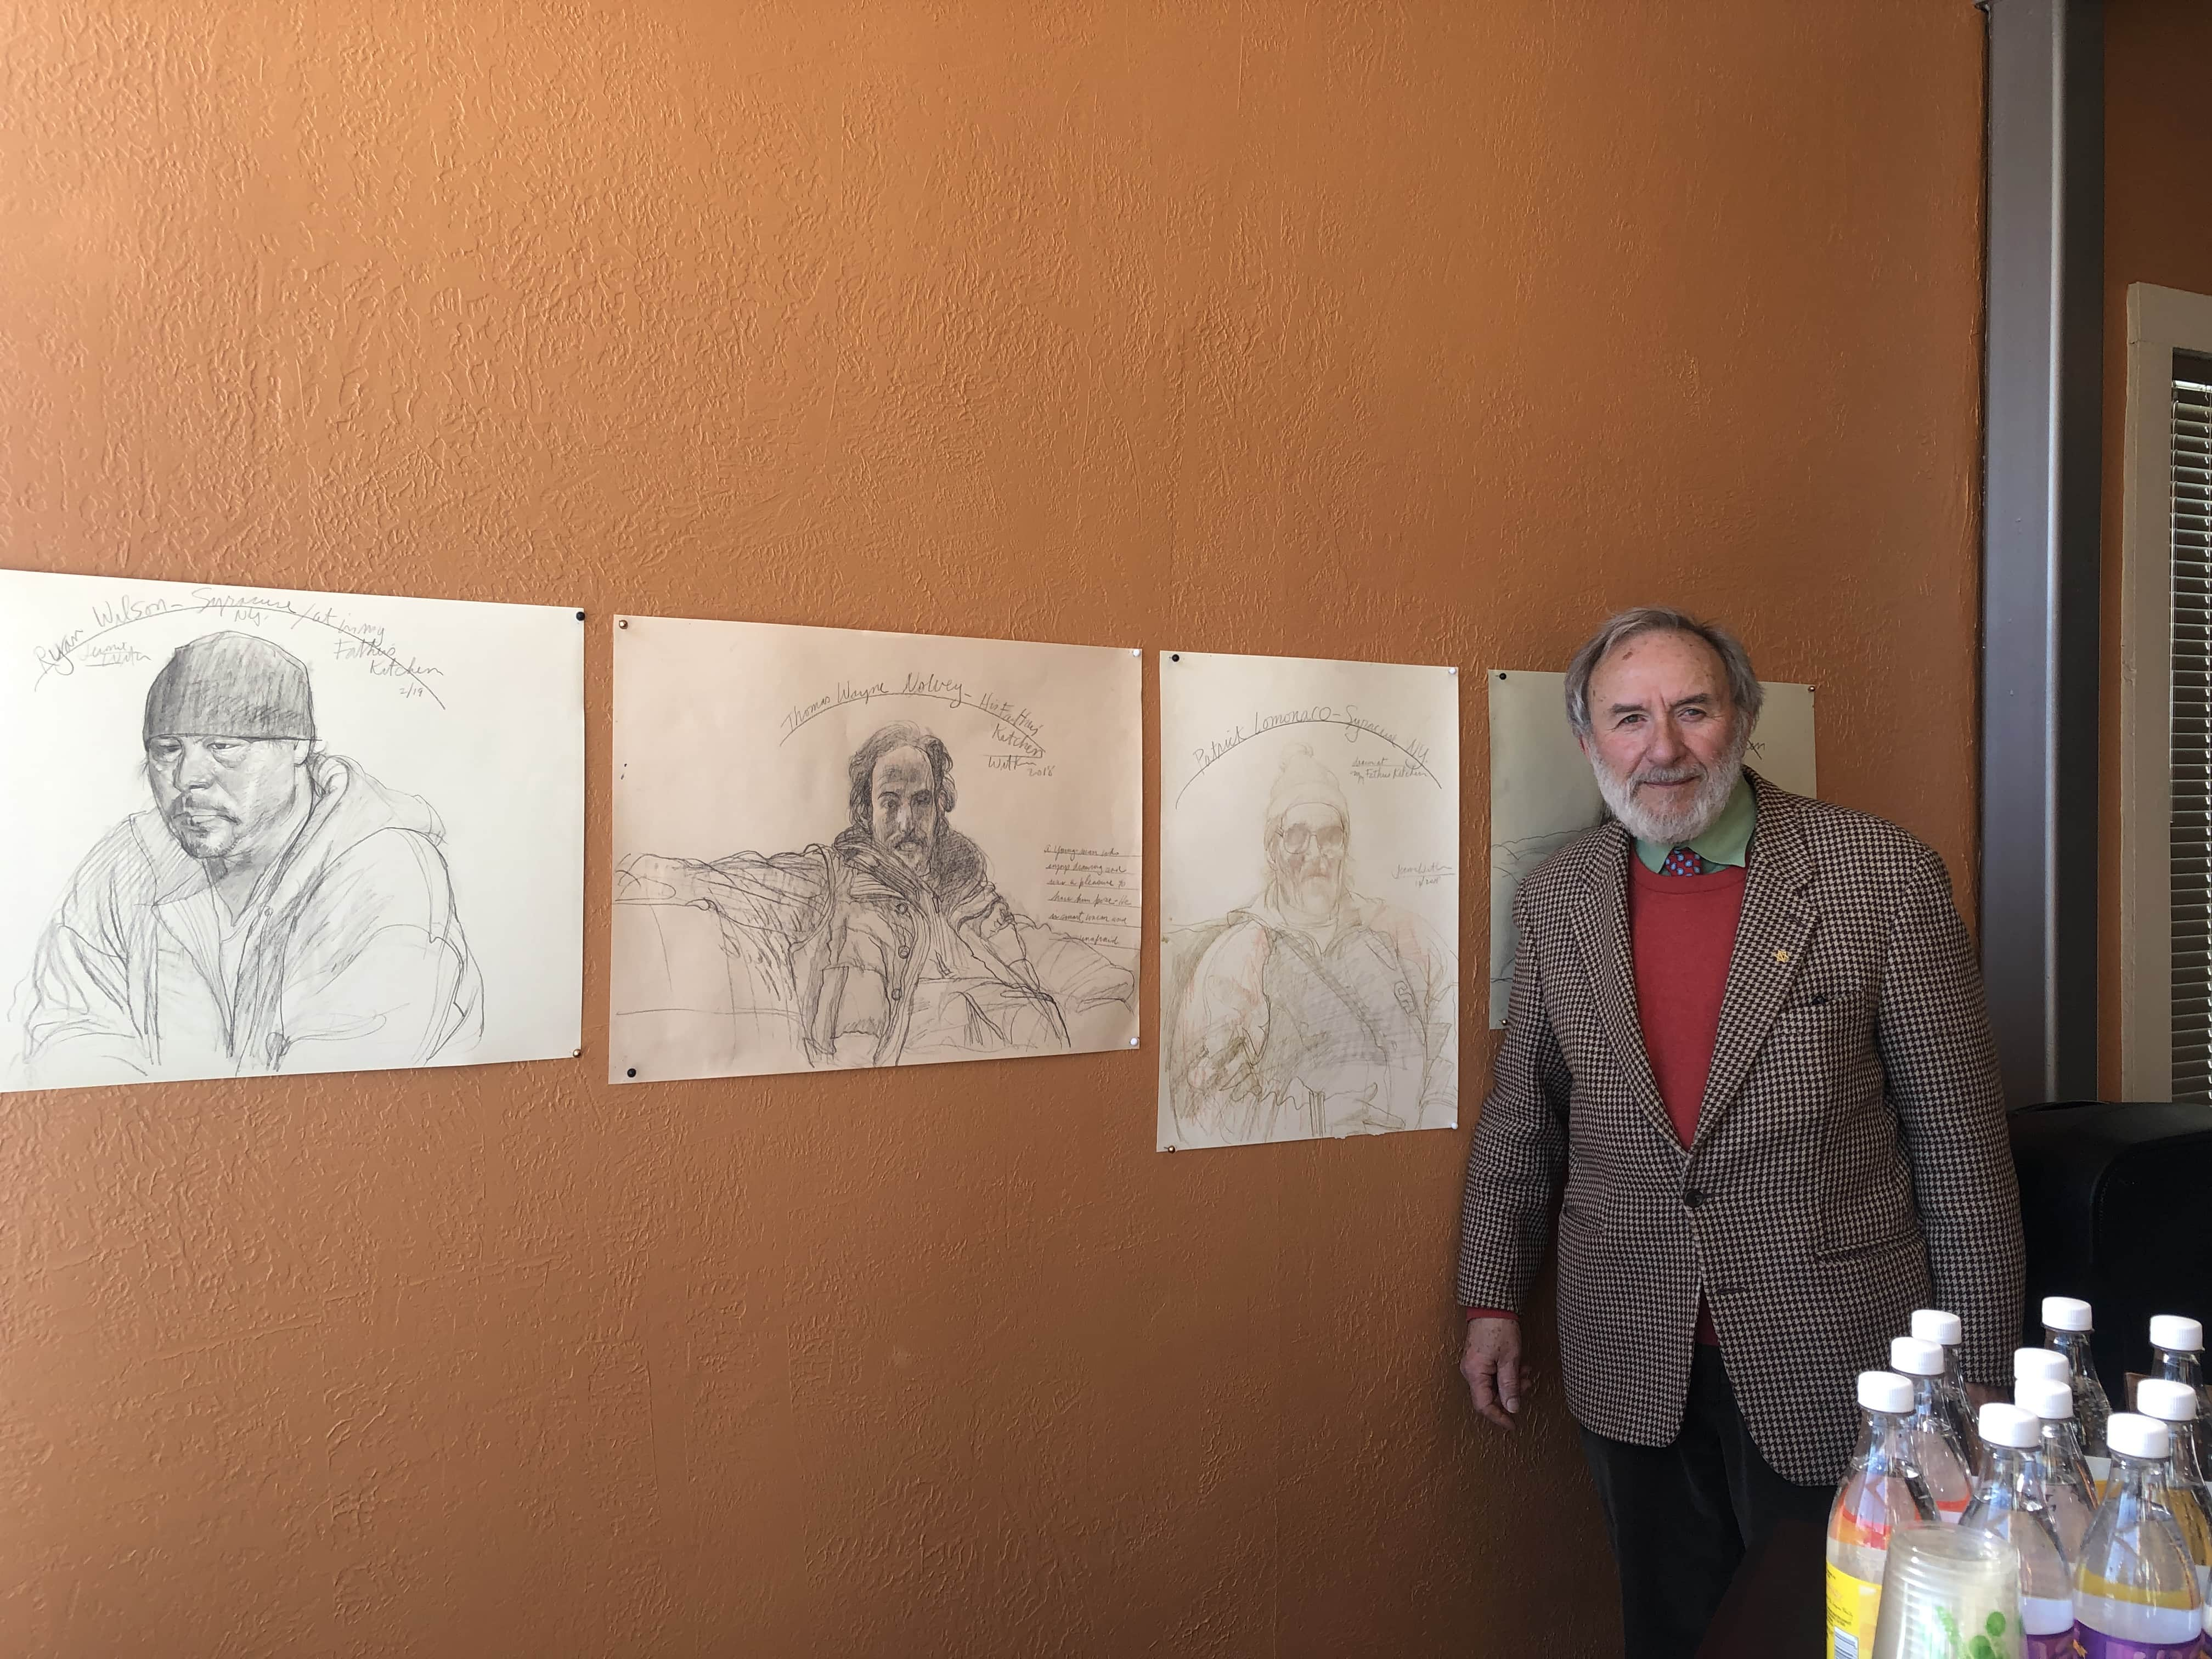 Former SU art professor Jerome Witkin next to his painting.